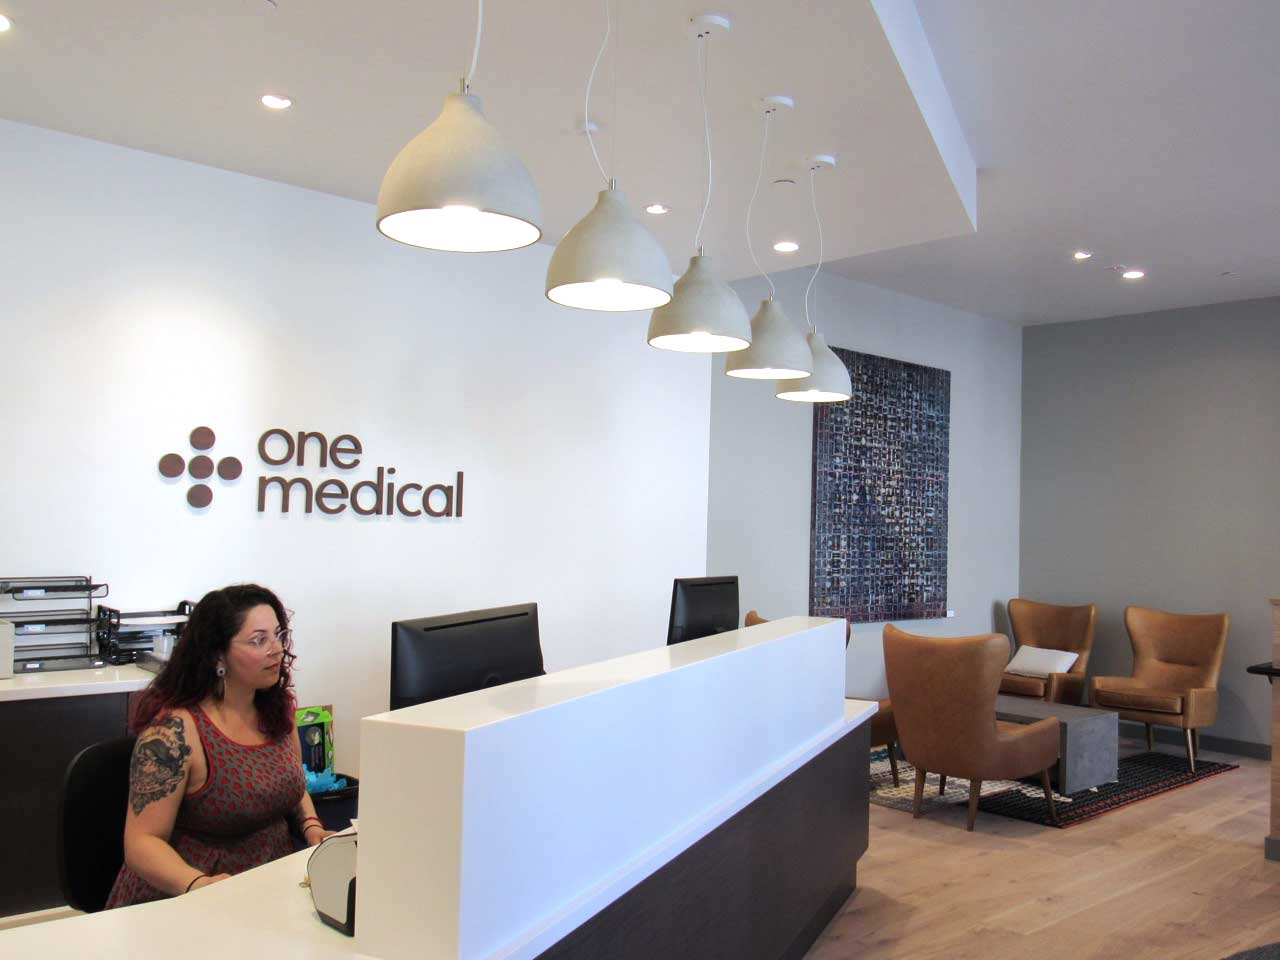 U201cWith The New Facility, The People Of Emeryville Can Truly Experience The  One Medical Differenceu201d They Noted Through A Press Release.